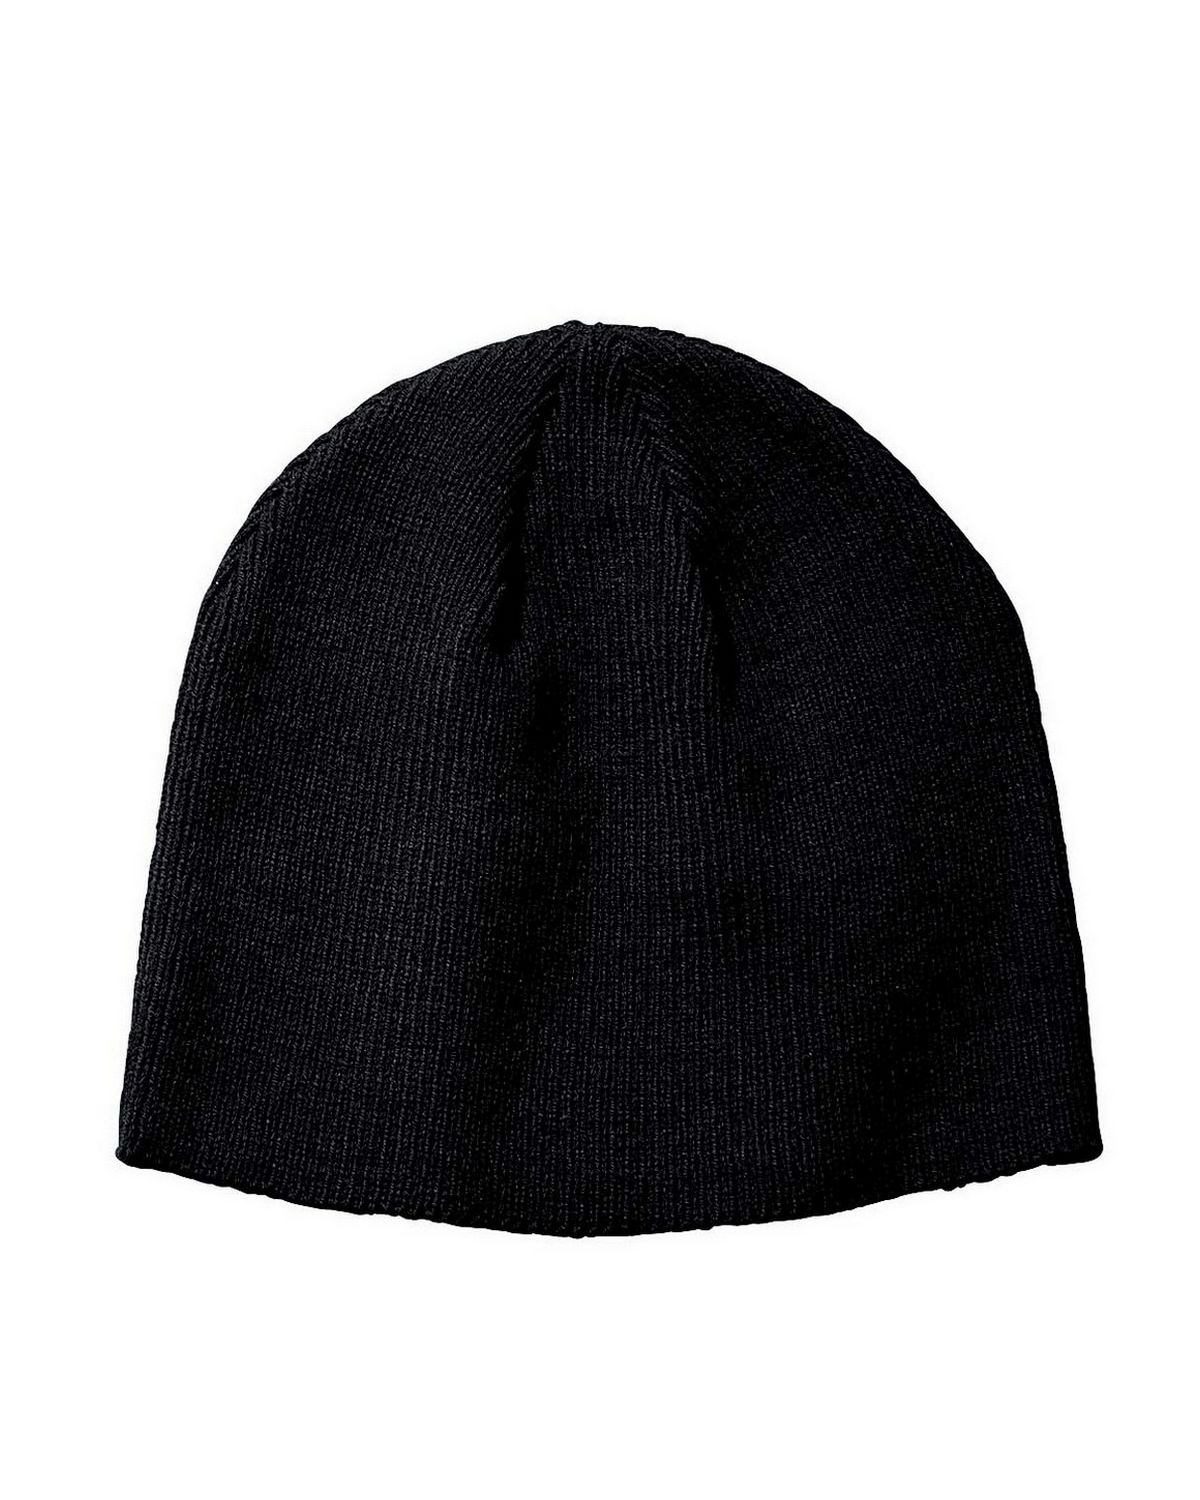 Big Accessories Unisex-Child Knit Value Beanie Bx026 -Royal -Os BX026